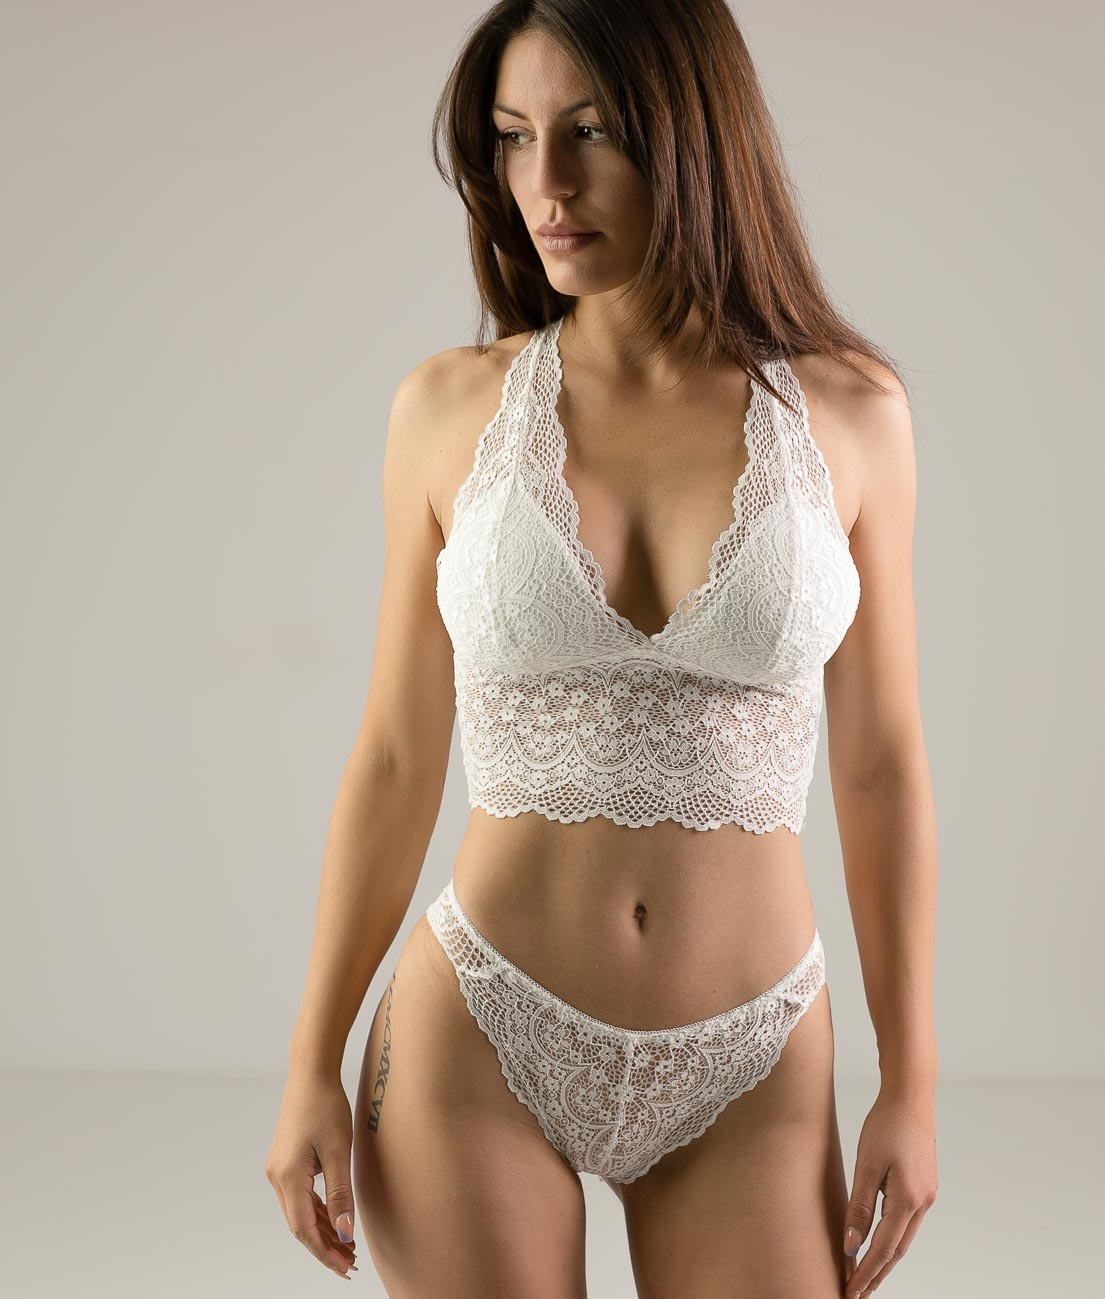 OUTFIT INCIFER - WHITE